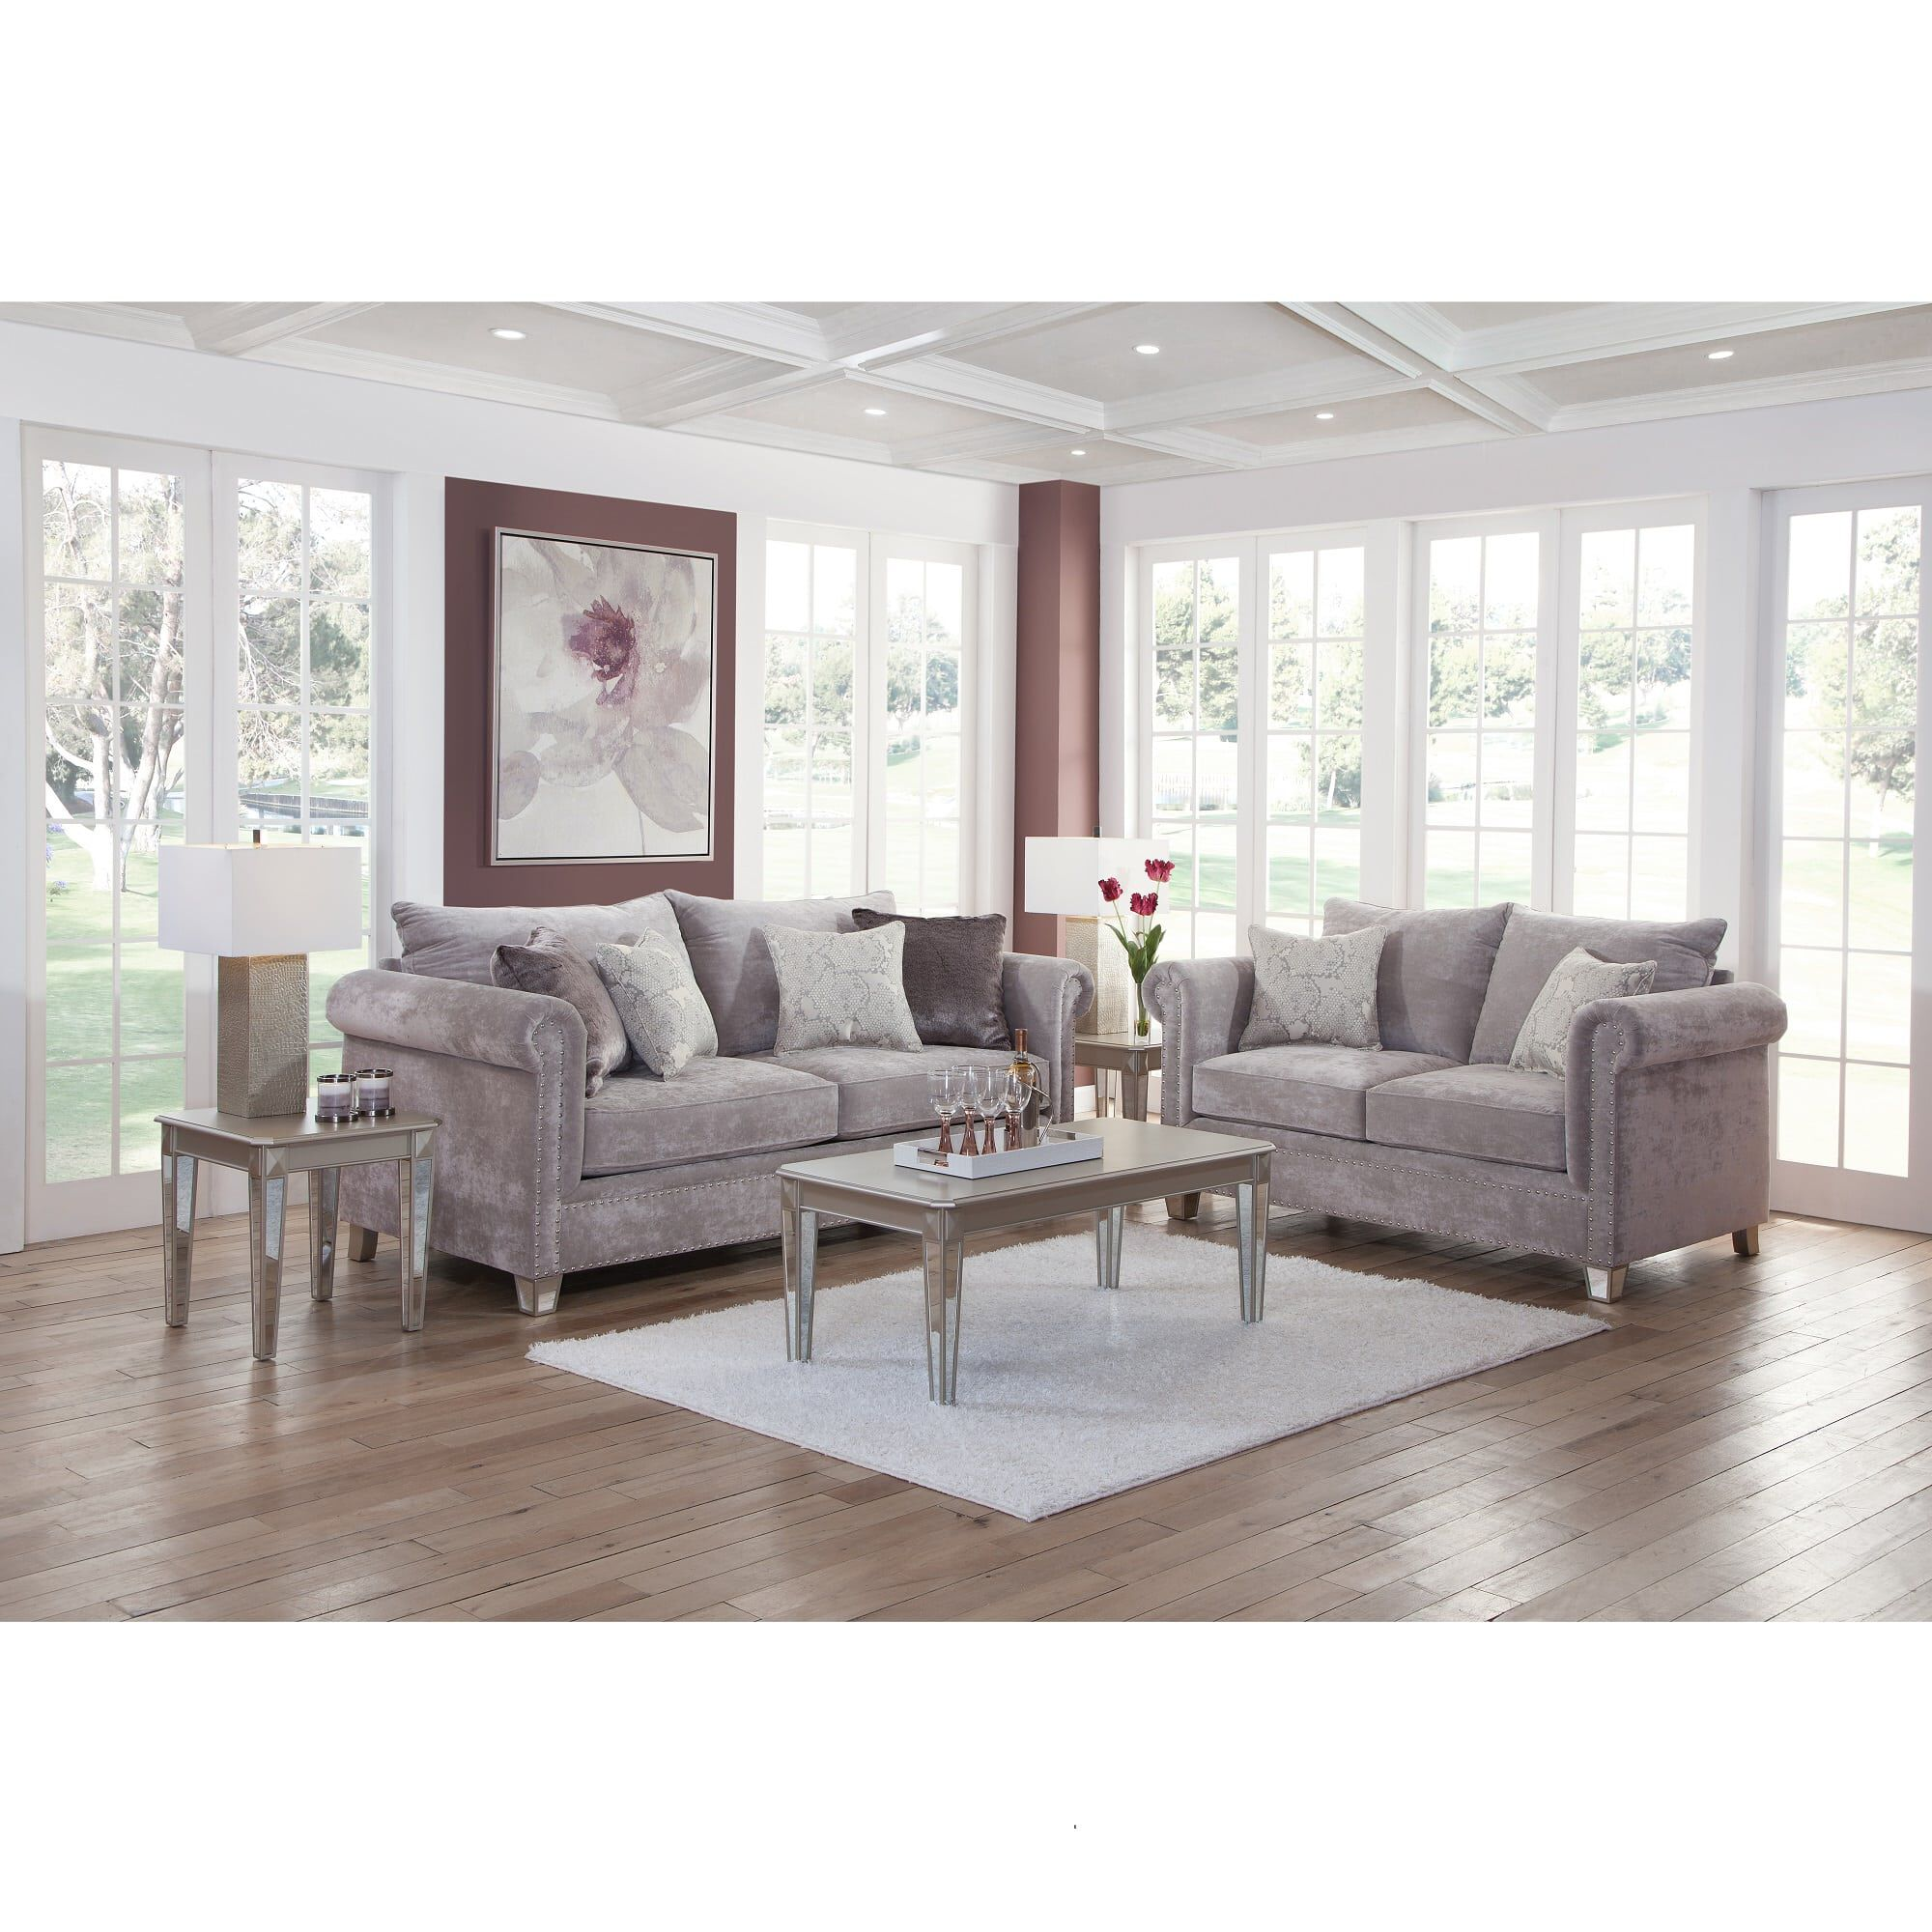 Grey Living Room Furniture 2 Piece Hollywood Living Room Collection